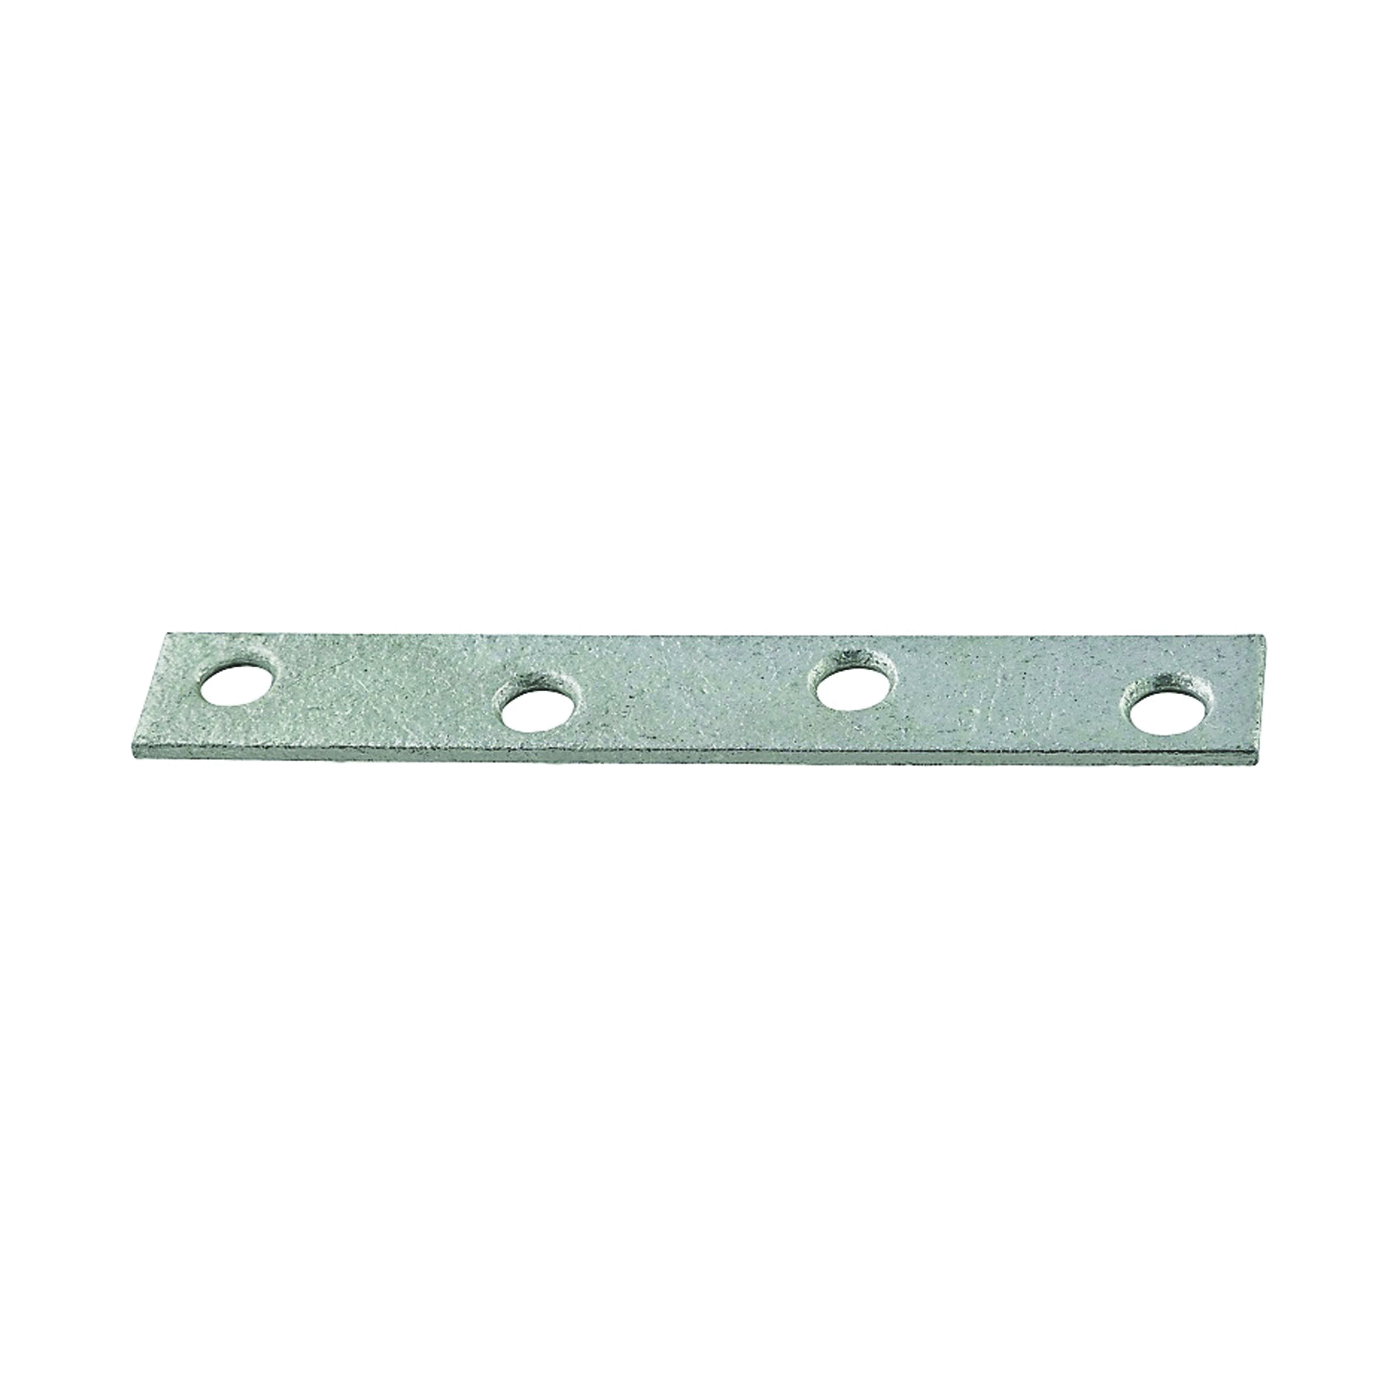 Picture of National Hardware N114-413 Mending Brace, 4 in L, 5/8 in W, Steel, Galvanized, Screw Mounting